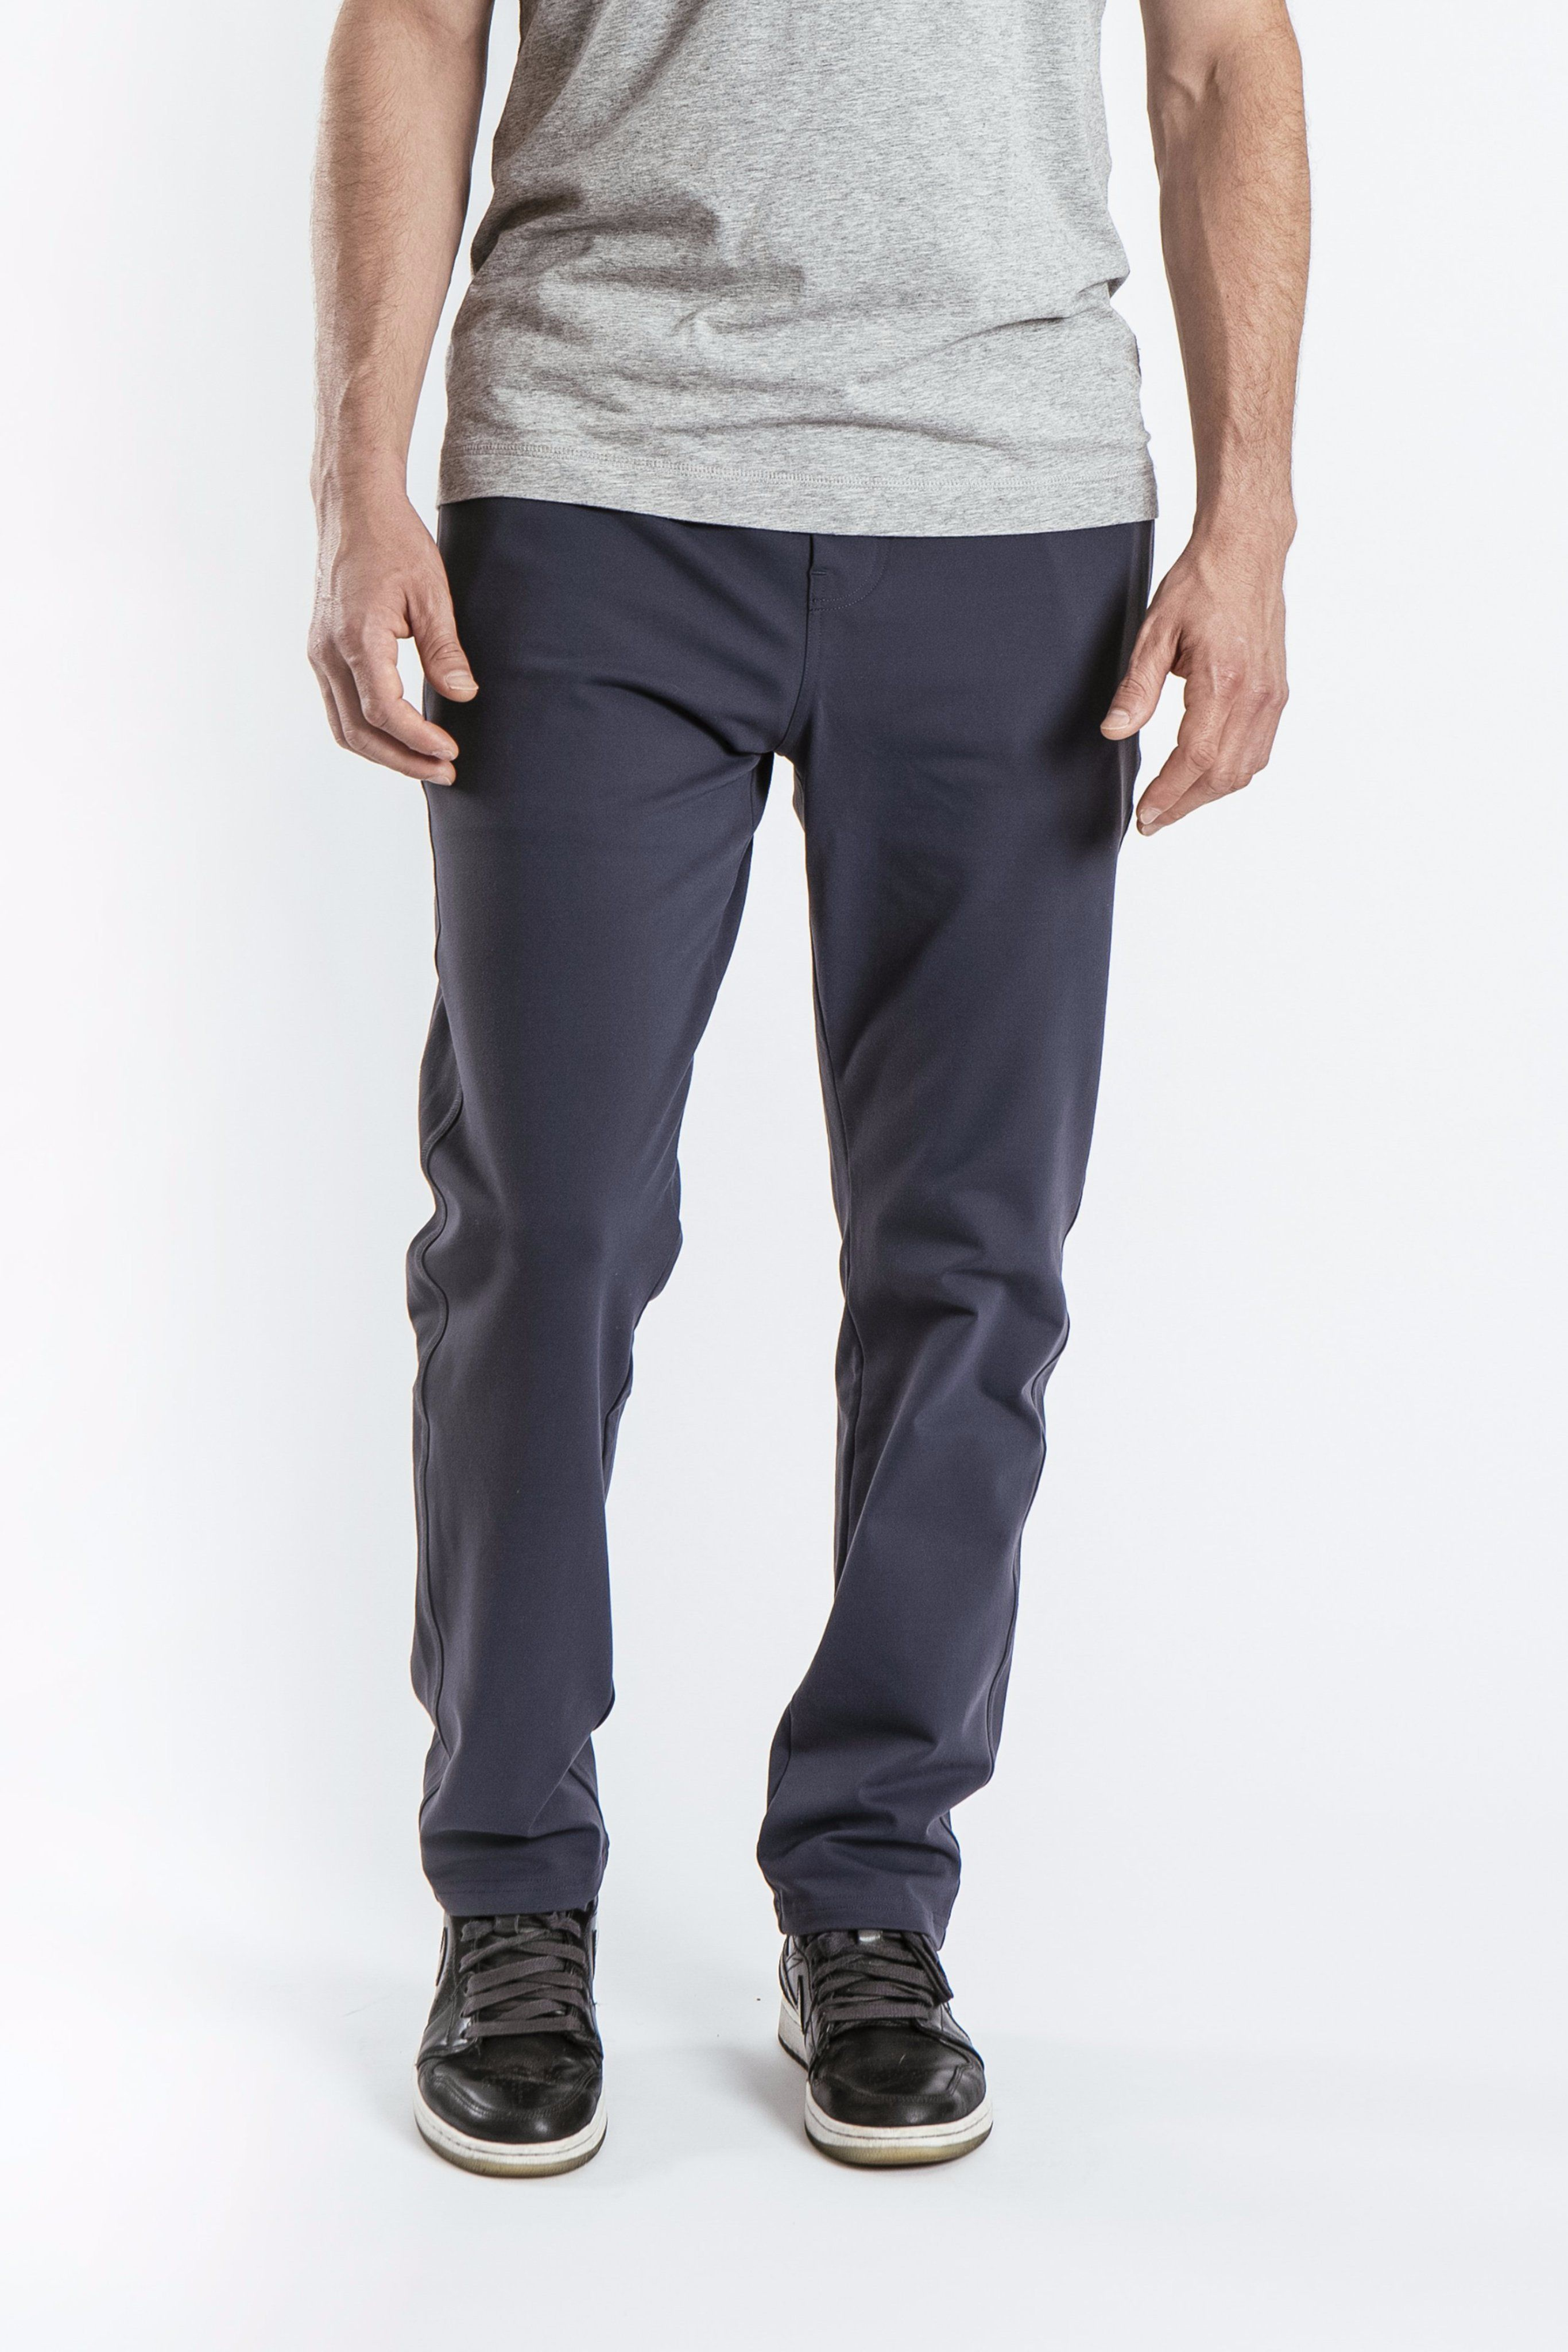 All day every day pant mens athleisure pants pants